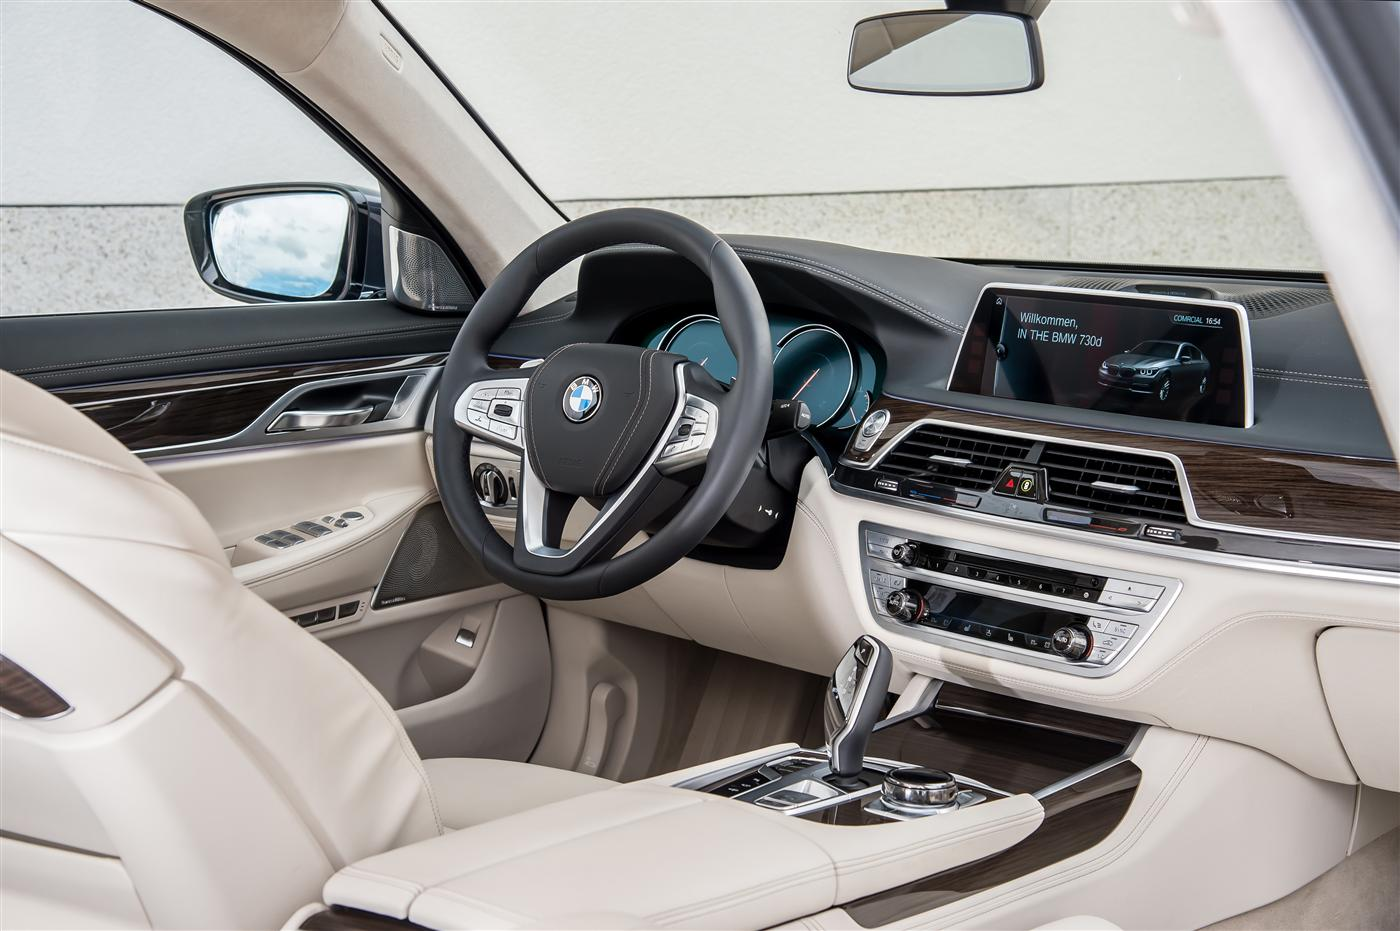 Introducing The 2016 BMW 7 Series 12